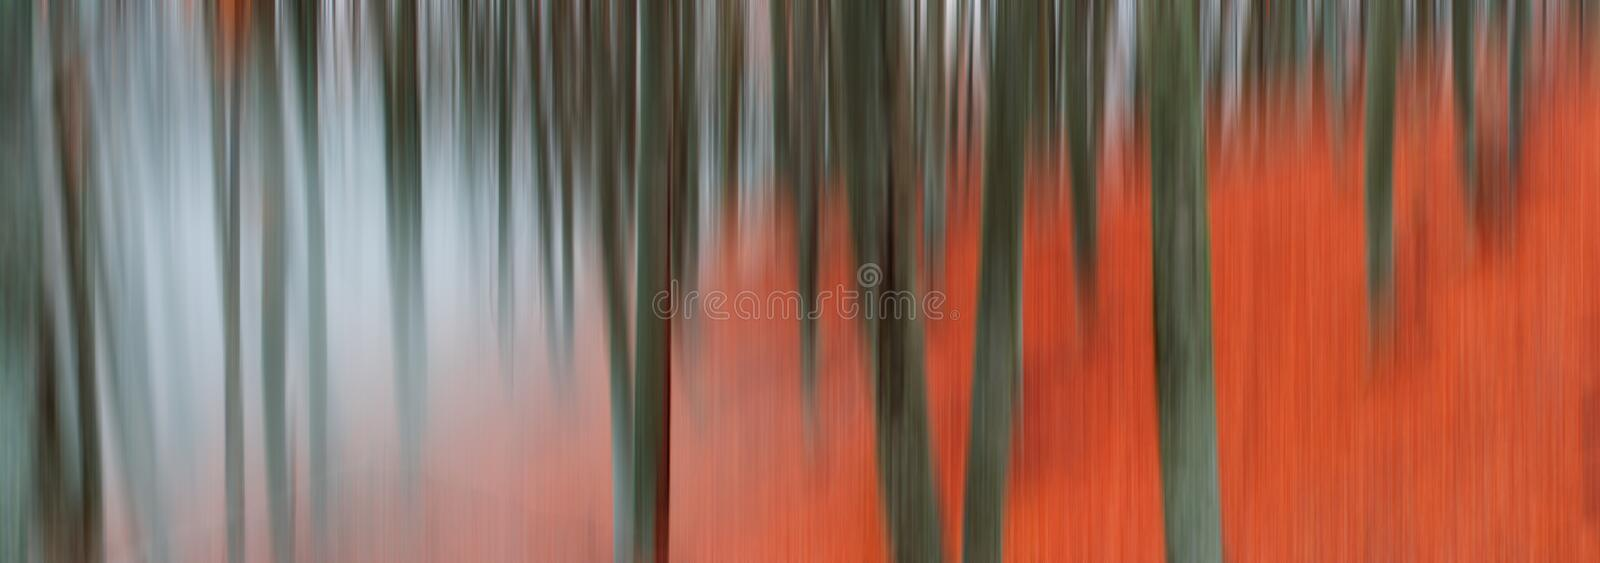 Blurred tree trunks royalty free stock image